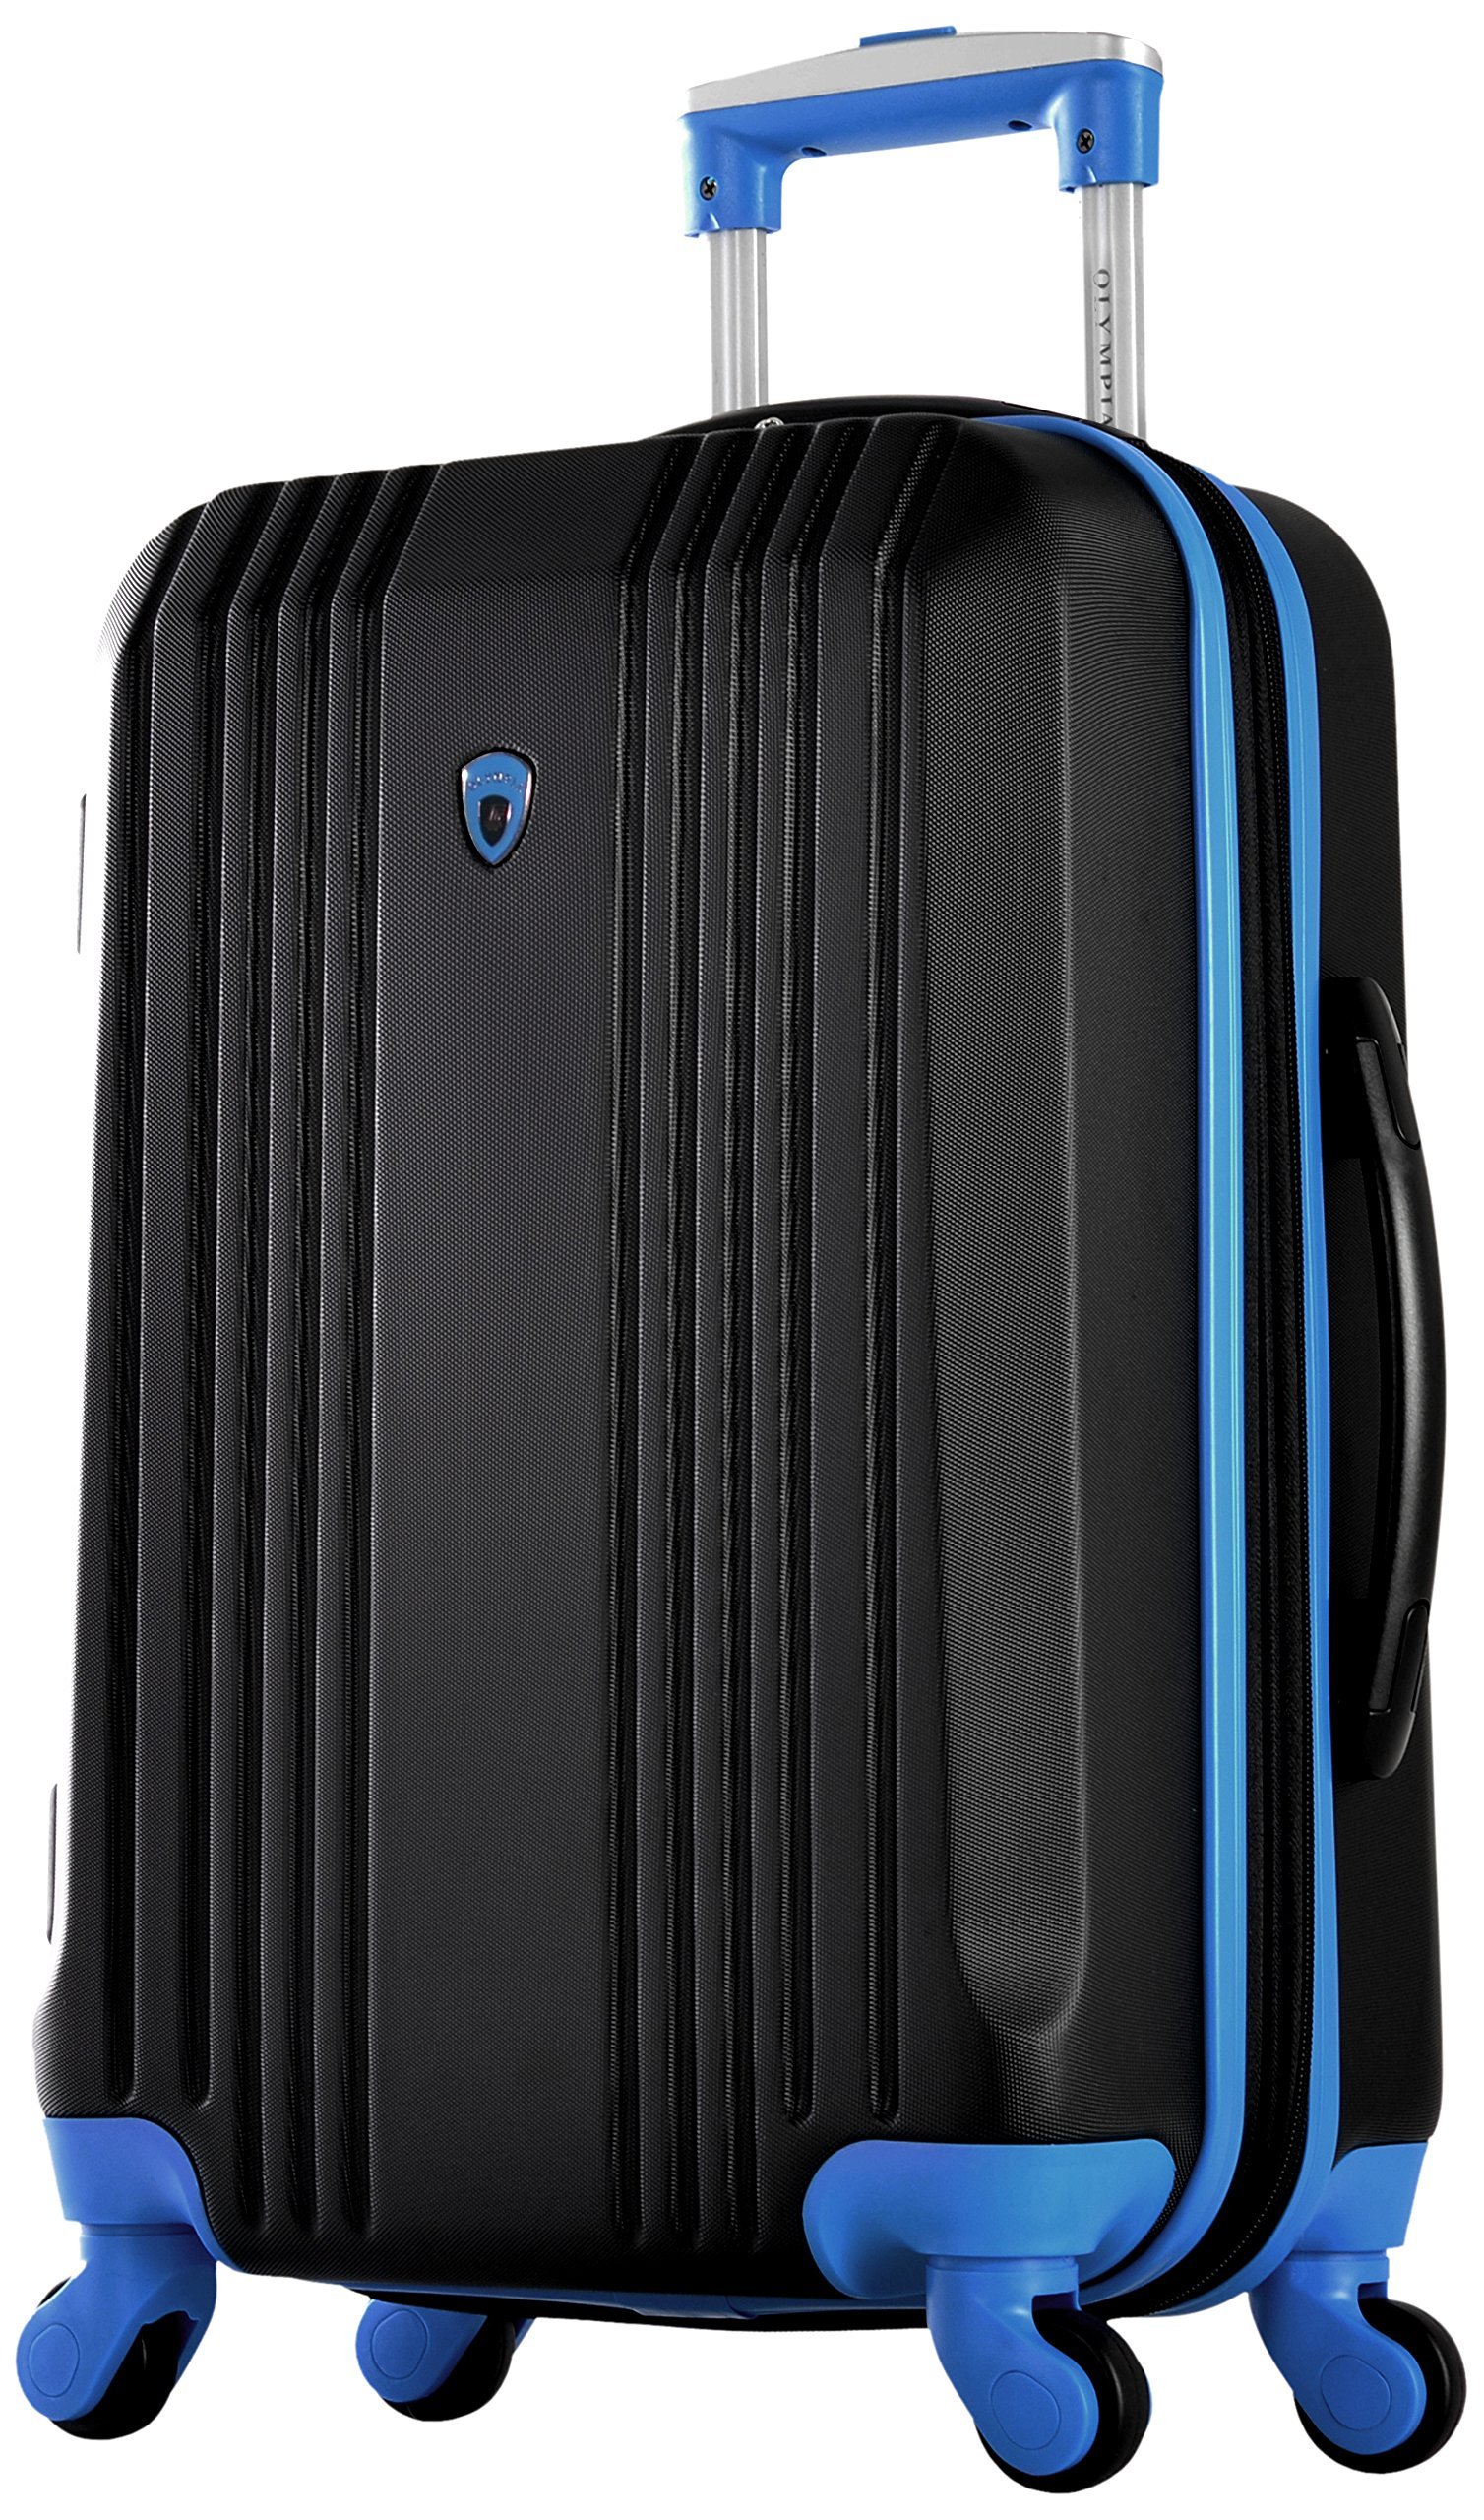 Olympia Apache Ii 21'' Carry-on Spinner, Black+Blue by Olympia (Image #1)